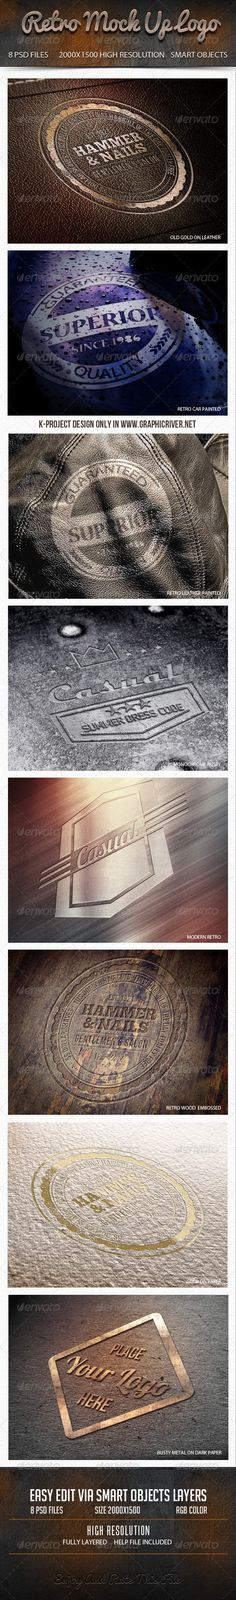 Retro Mock Up Logo By K Project 8 Layered Psd Files High Resolution Rgb Color Easy Edit Via Smart Objects Layers Instruction Included In Help File P